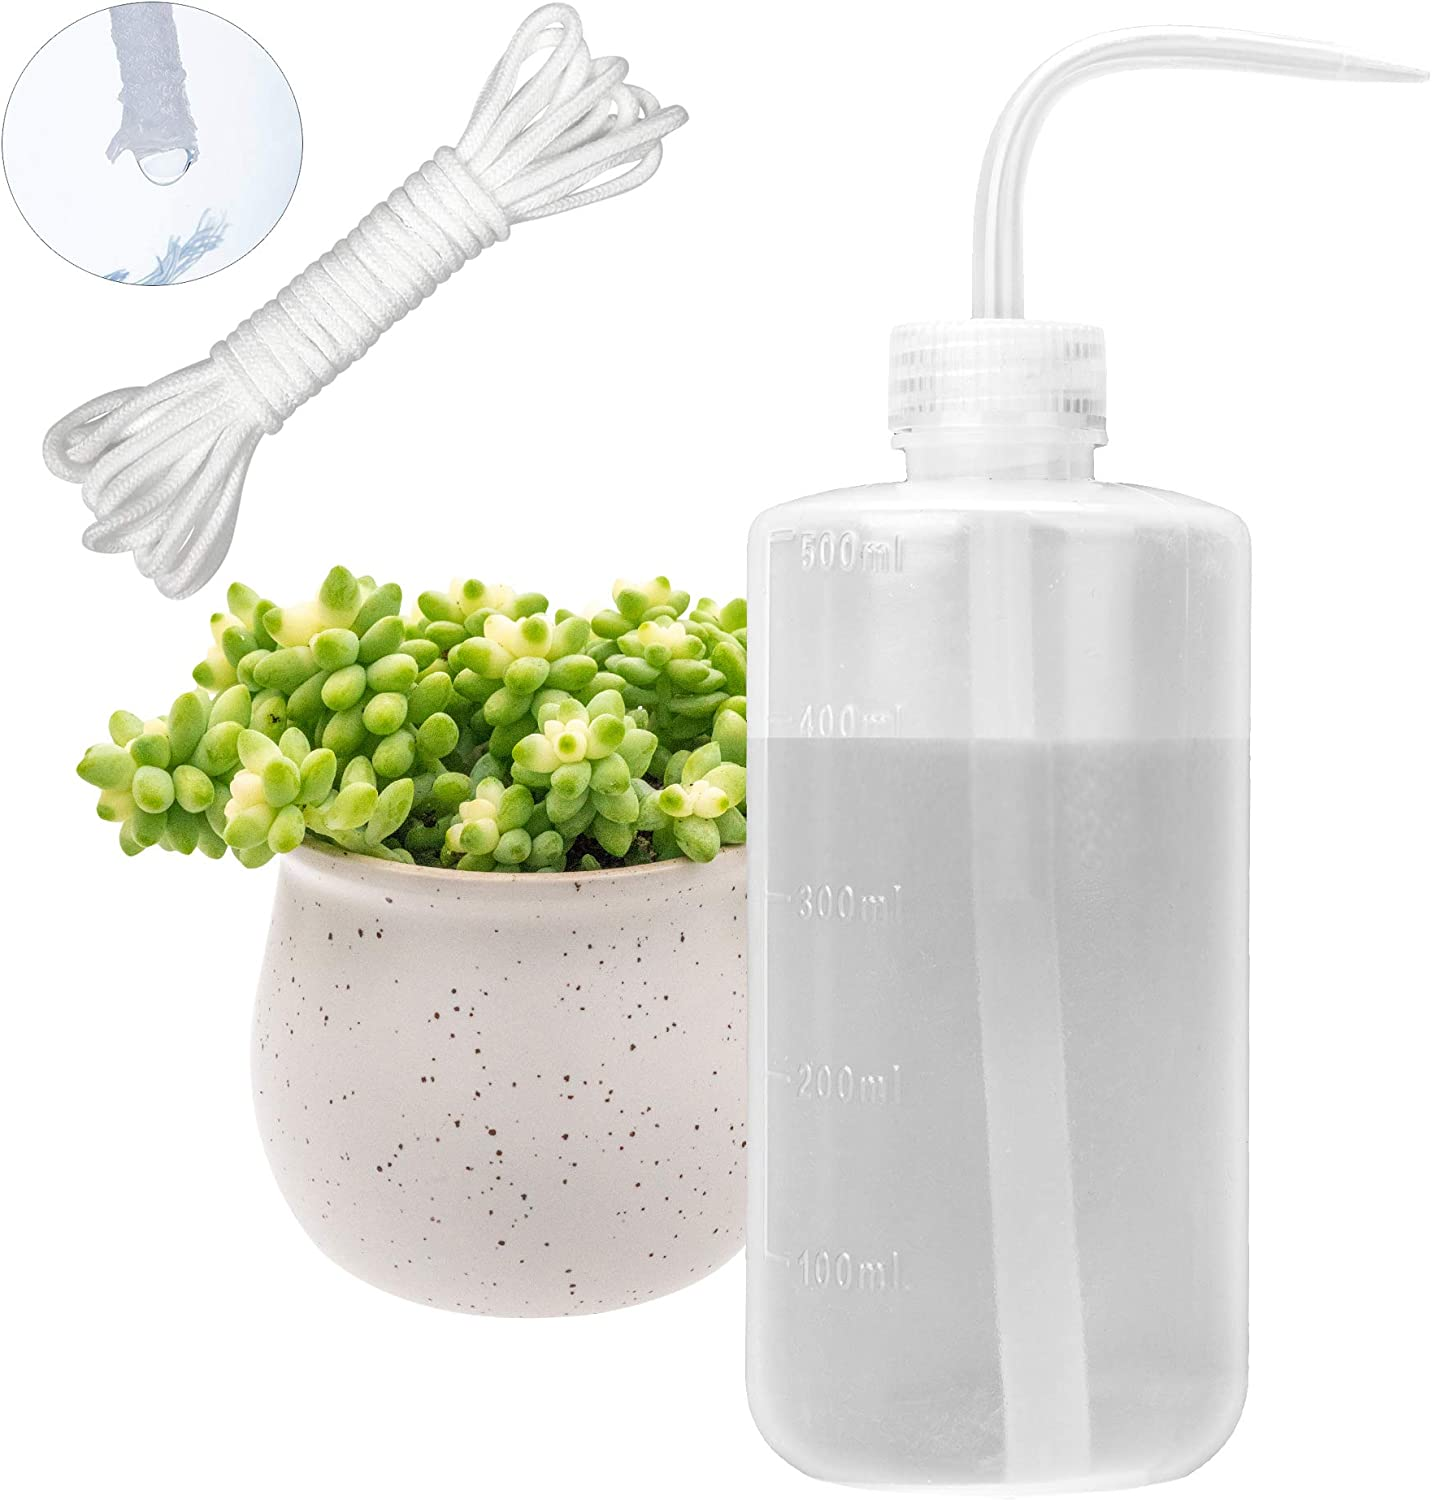 500ML Watering Bottle with 15 feet Self Watering Wick for Succulent Indoor Plants Cactus Squeeze Wash Can Long Nozzle Bend Mouth Waterer Bonsai Terrarium Orchids Seedling African Violets Fairy Garden